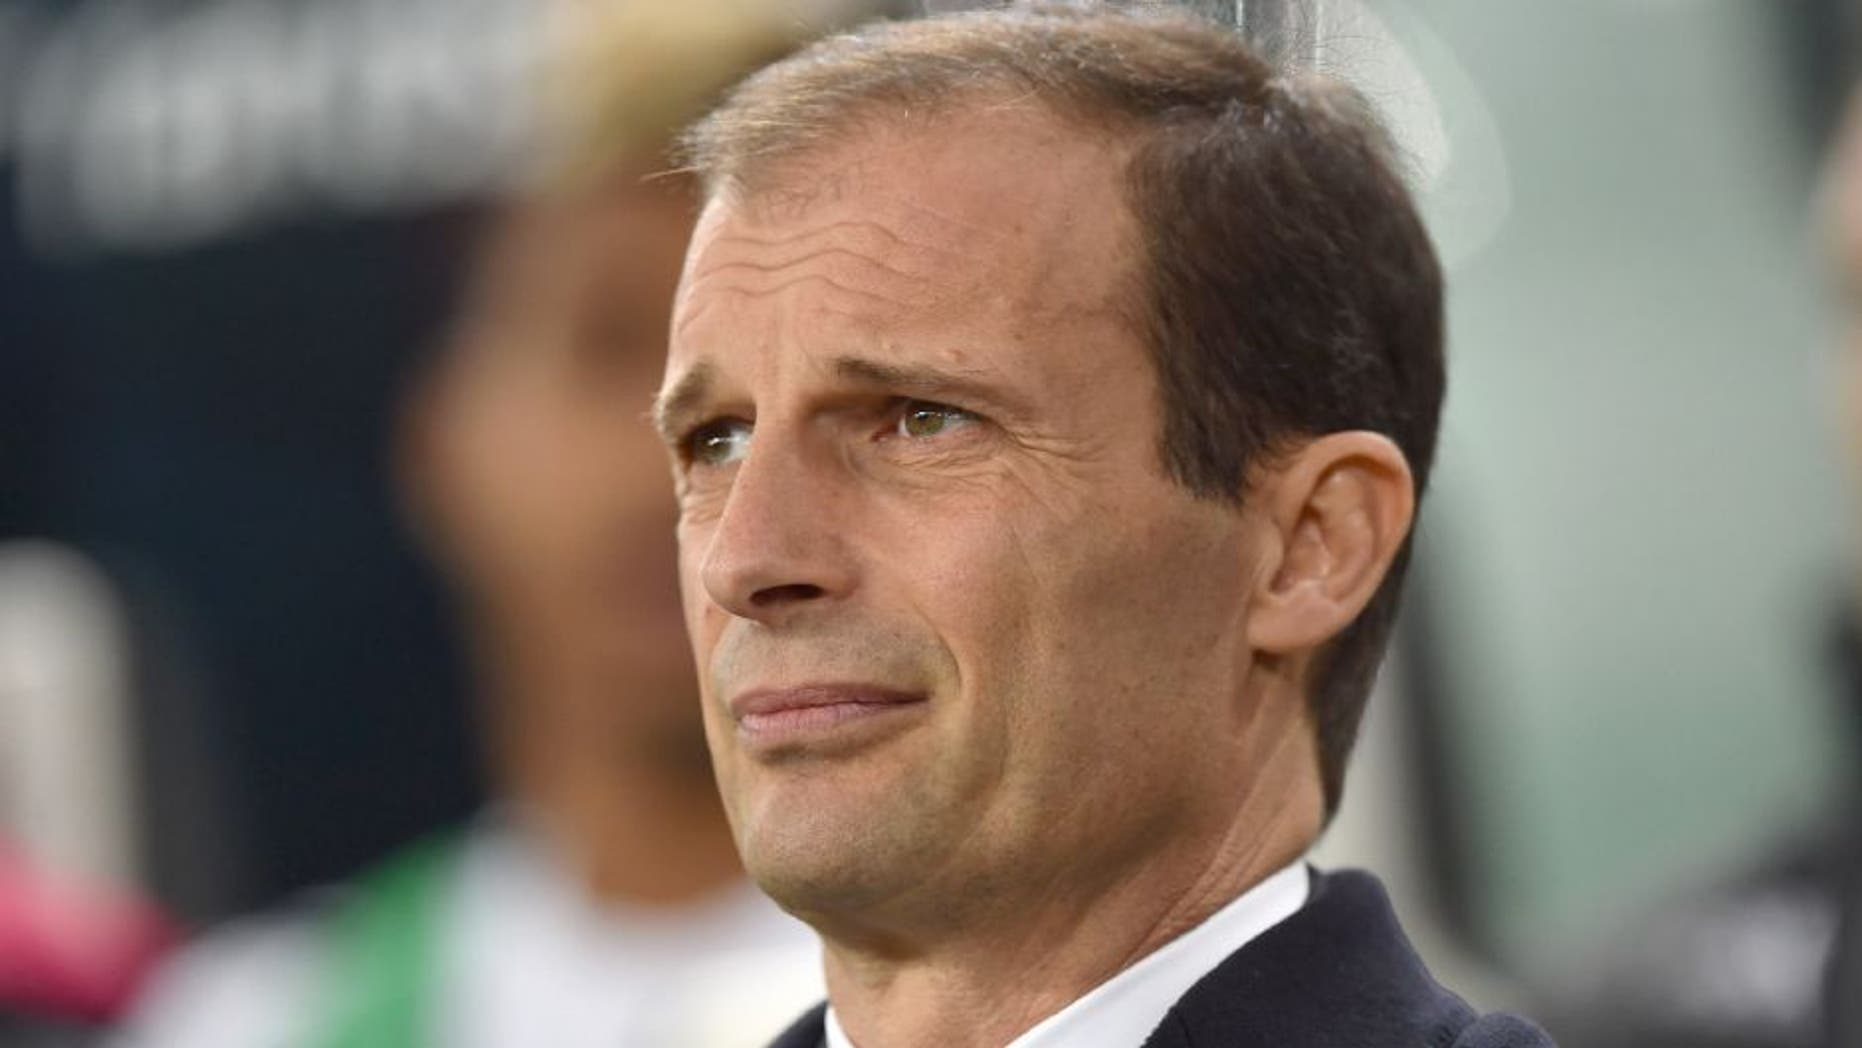 TURIN, ITALY - FEBRUARY 03: Juventus FC head coach Massimiliano Allegri looks on during the Serie A match between Juventus FC and Genoa CFC at Juventus Arena on February 3, 2016 in Turin, Italy. (Photo by Valerio Pennicino/Getty Images)